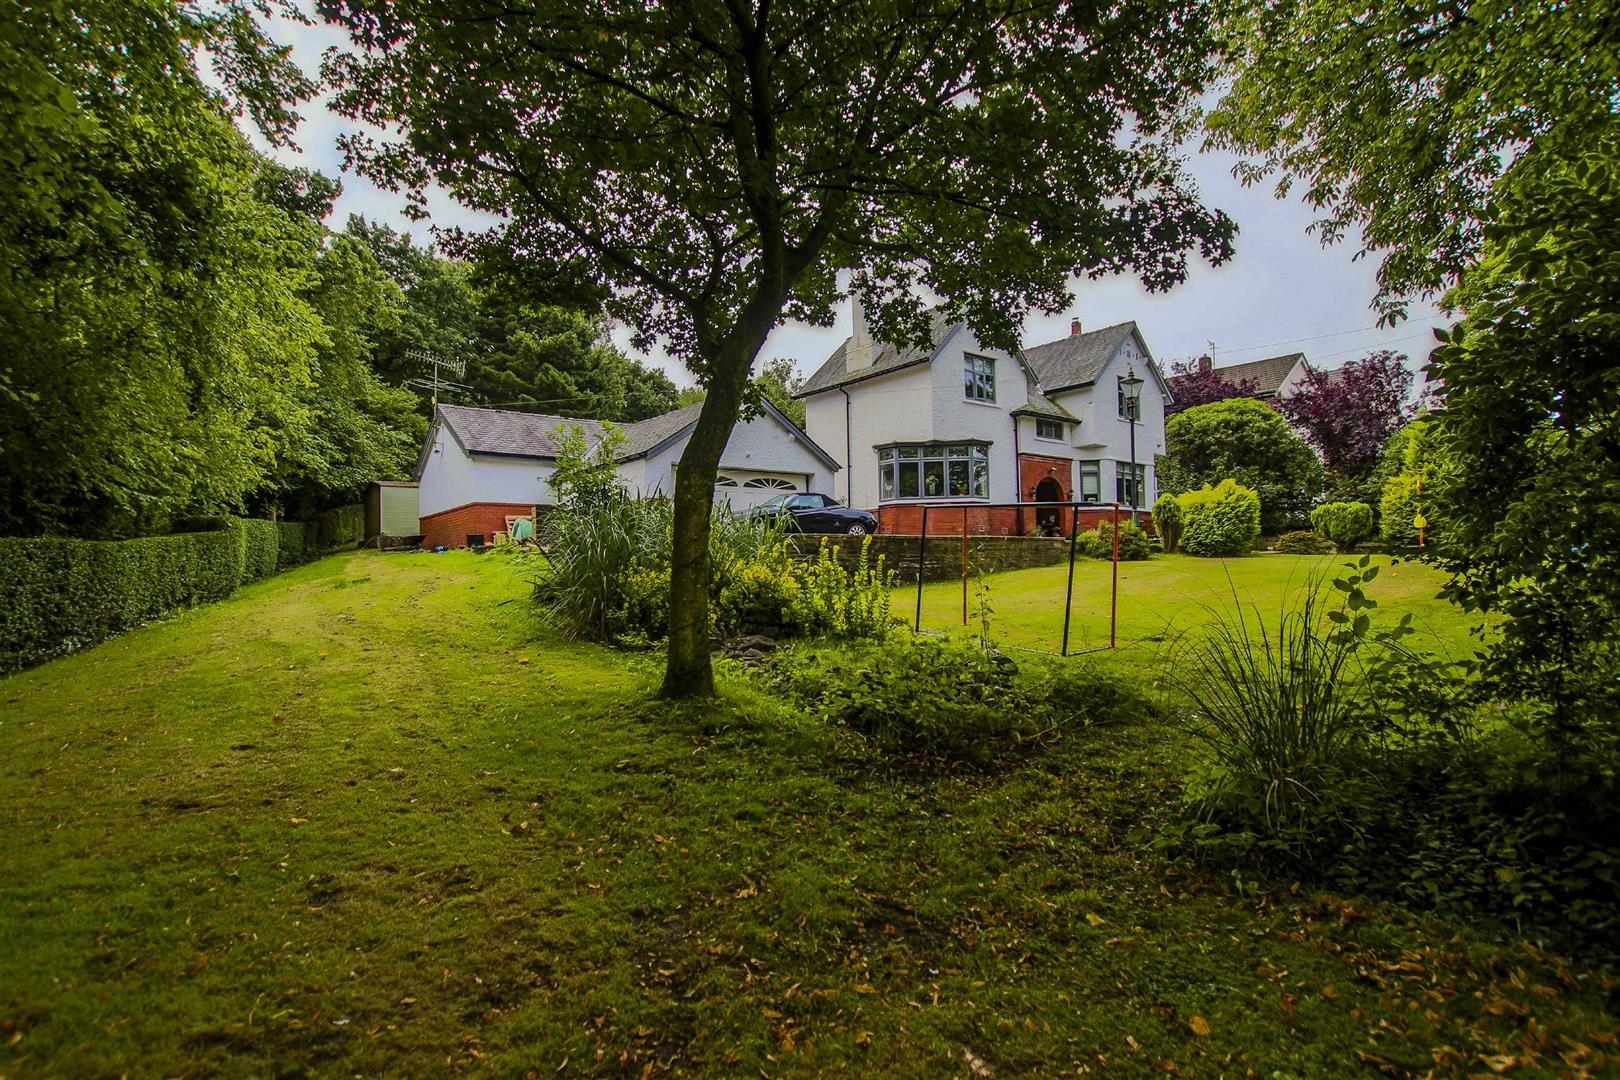 4 Bedroom Detached House For Sale - Image 12